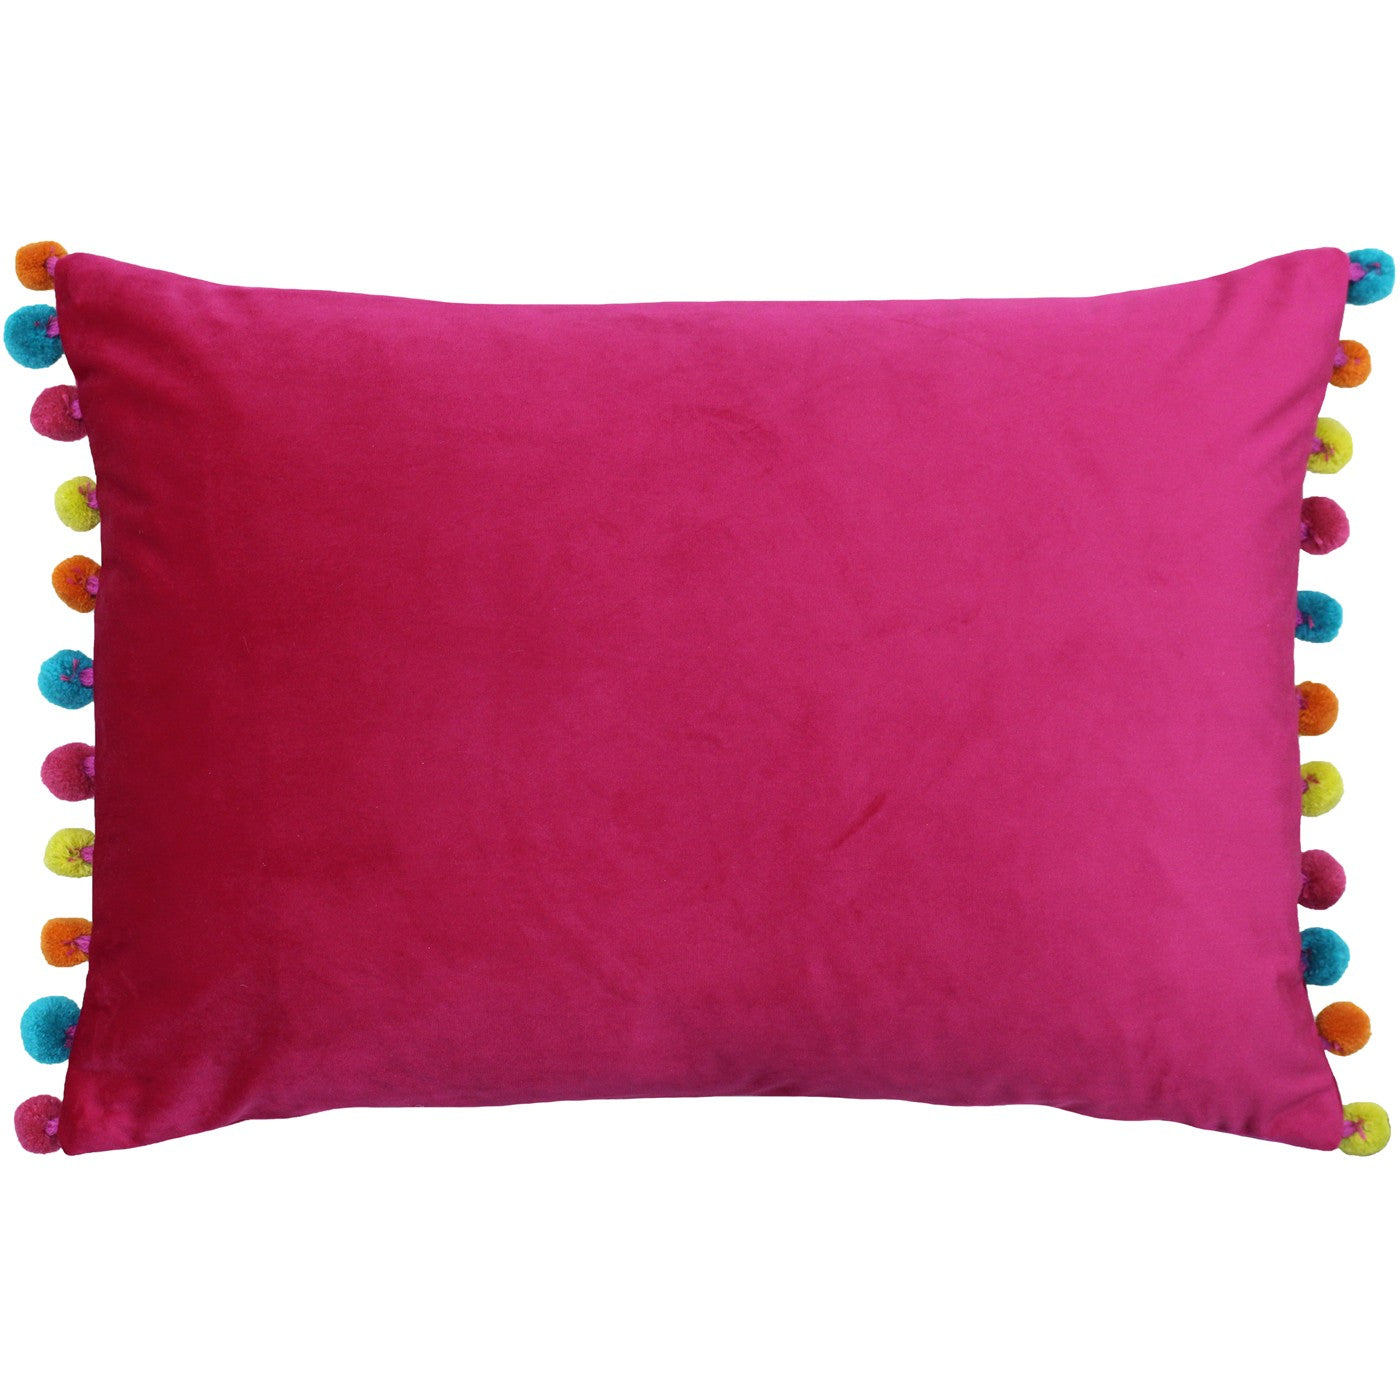 Hot Pink Velvet Rectangle Cushion with multi coloured Pom Poms